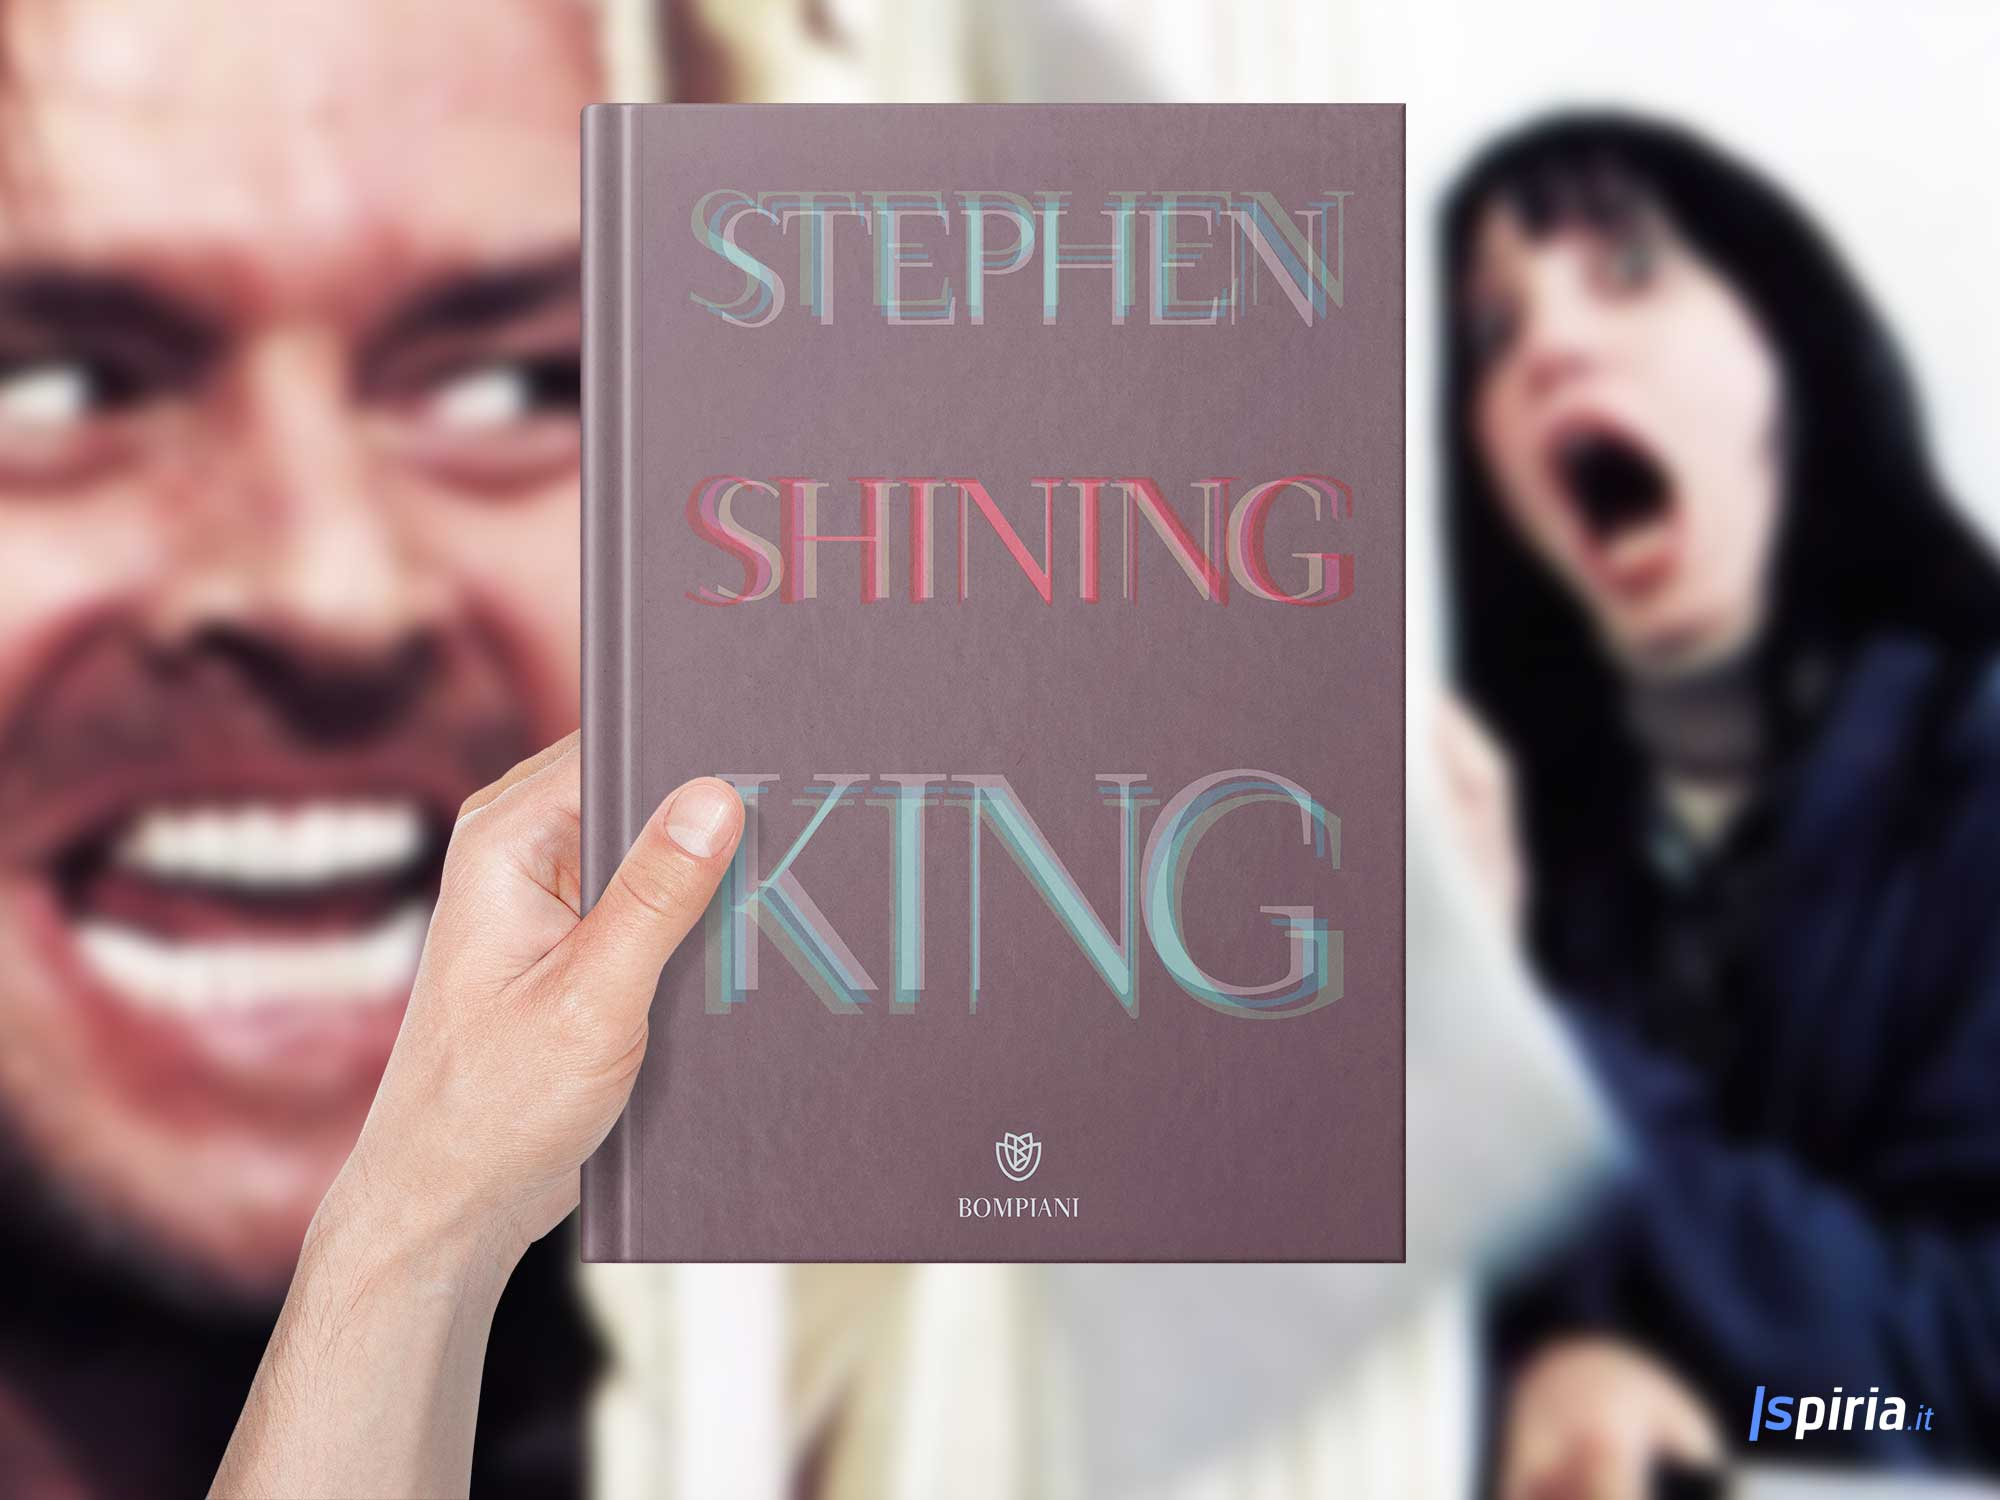 miglior-libro-di-stephen-King-shining